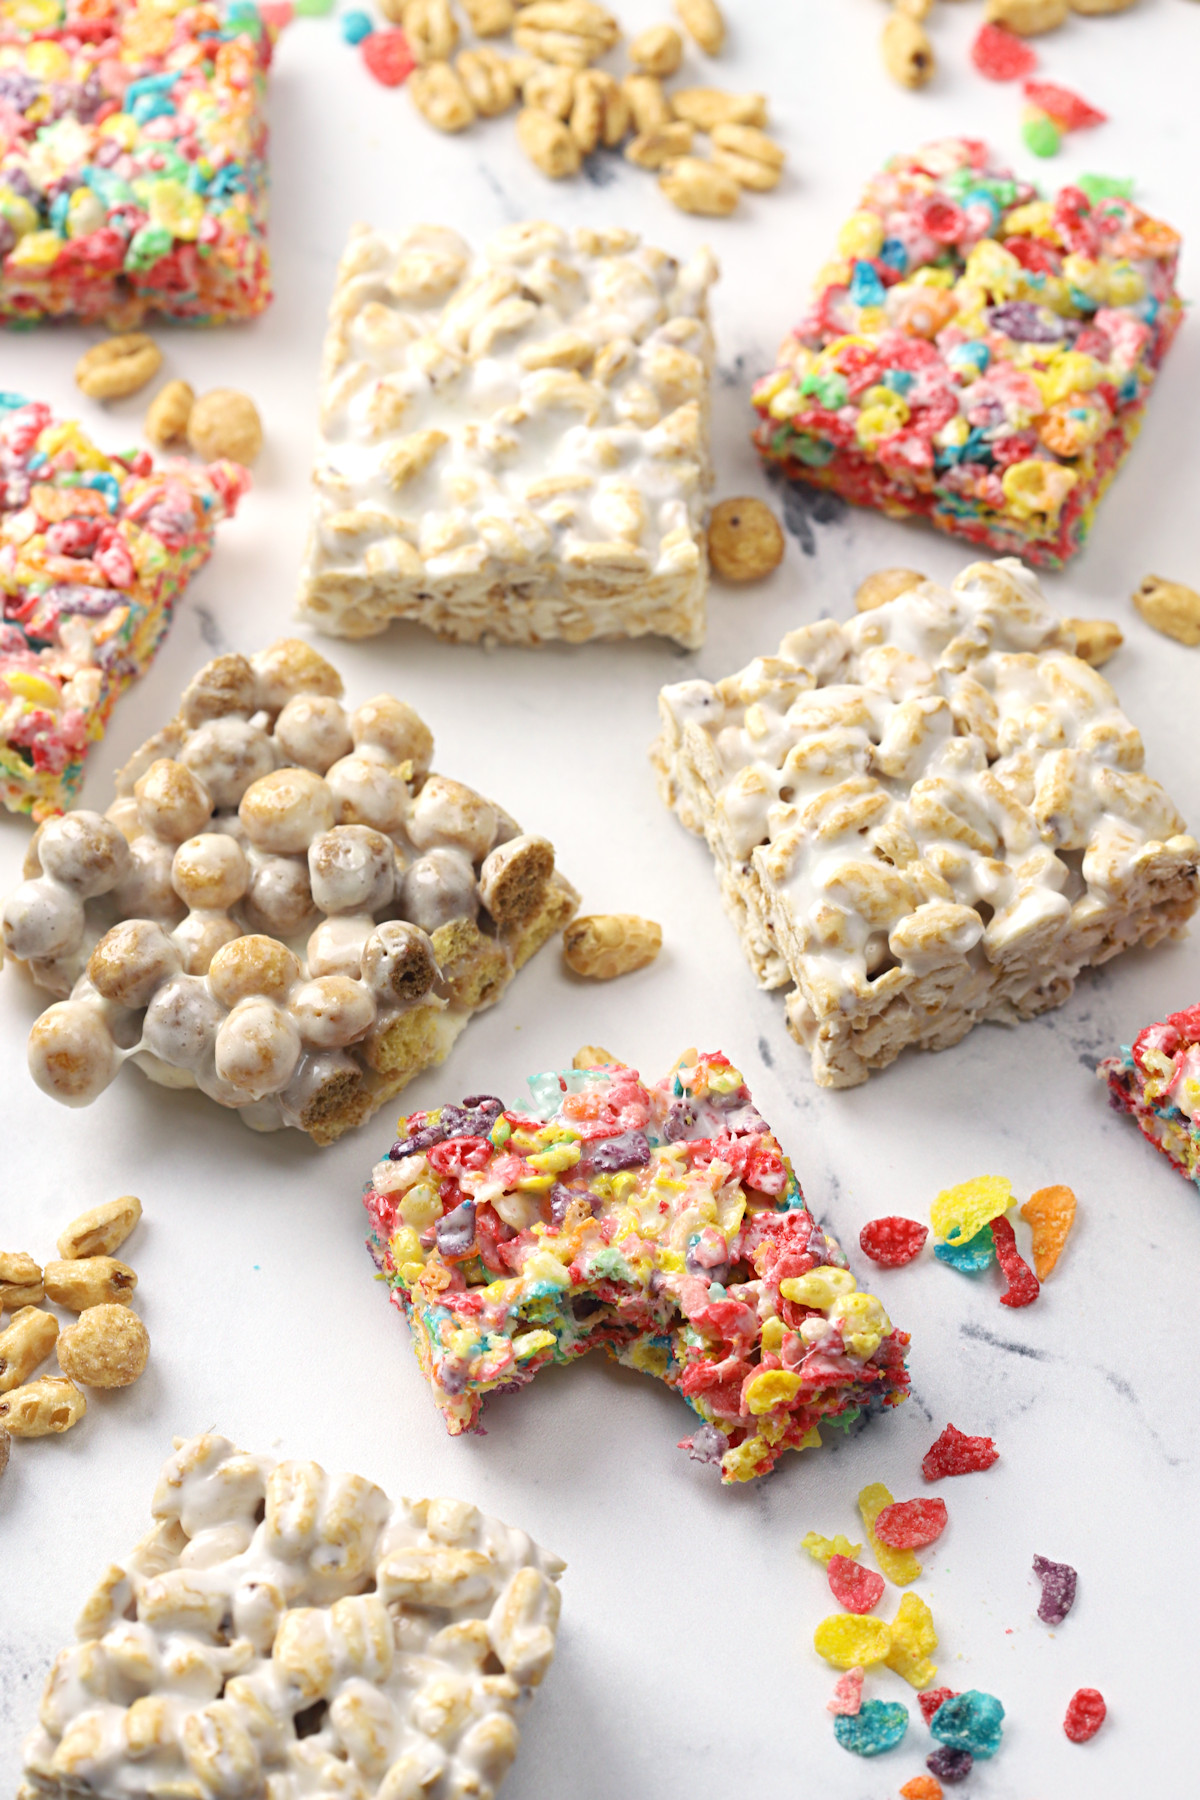 Cereal marshmallow treats on a marble counter top.